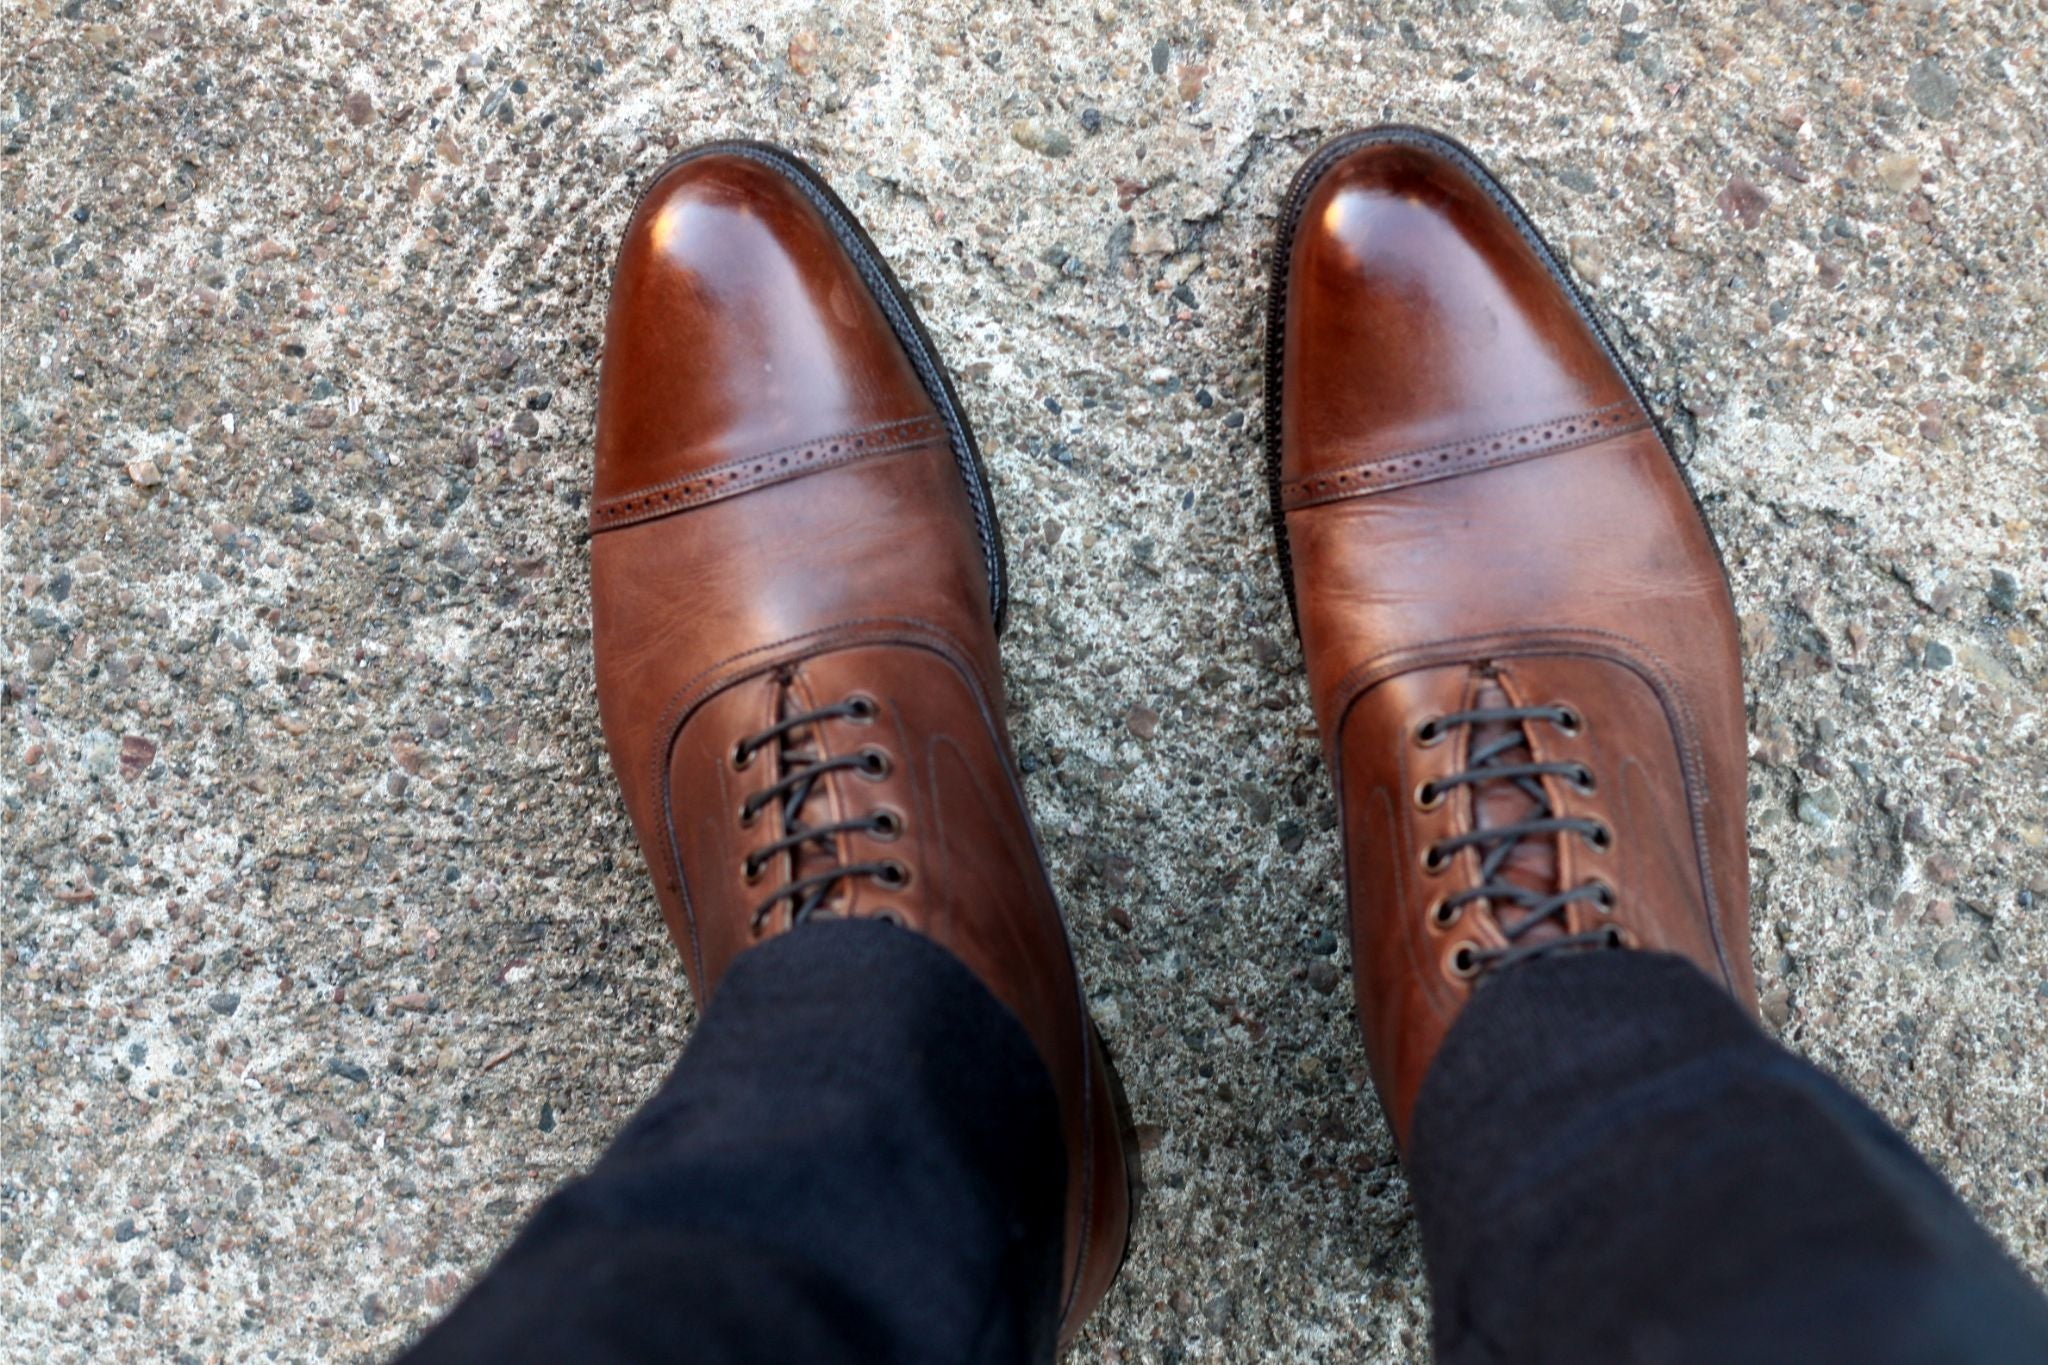 Grenson balmoral boots with flannel trousers